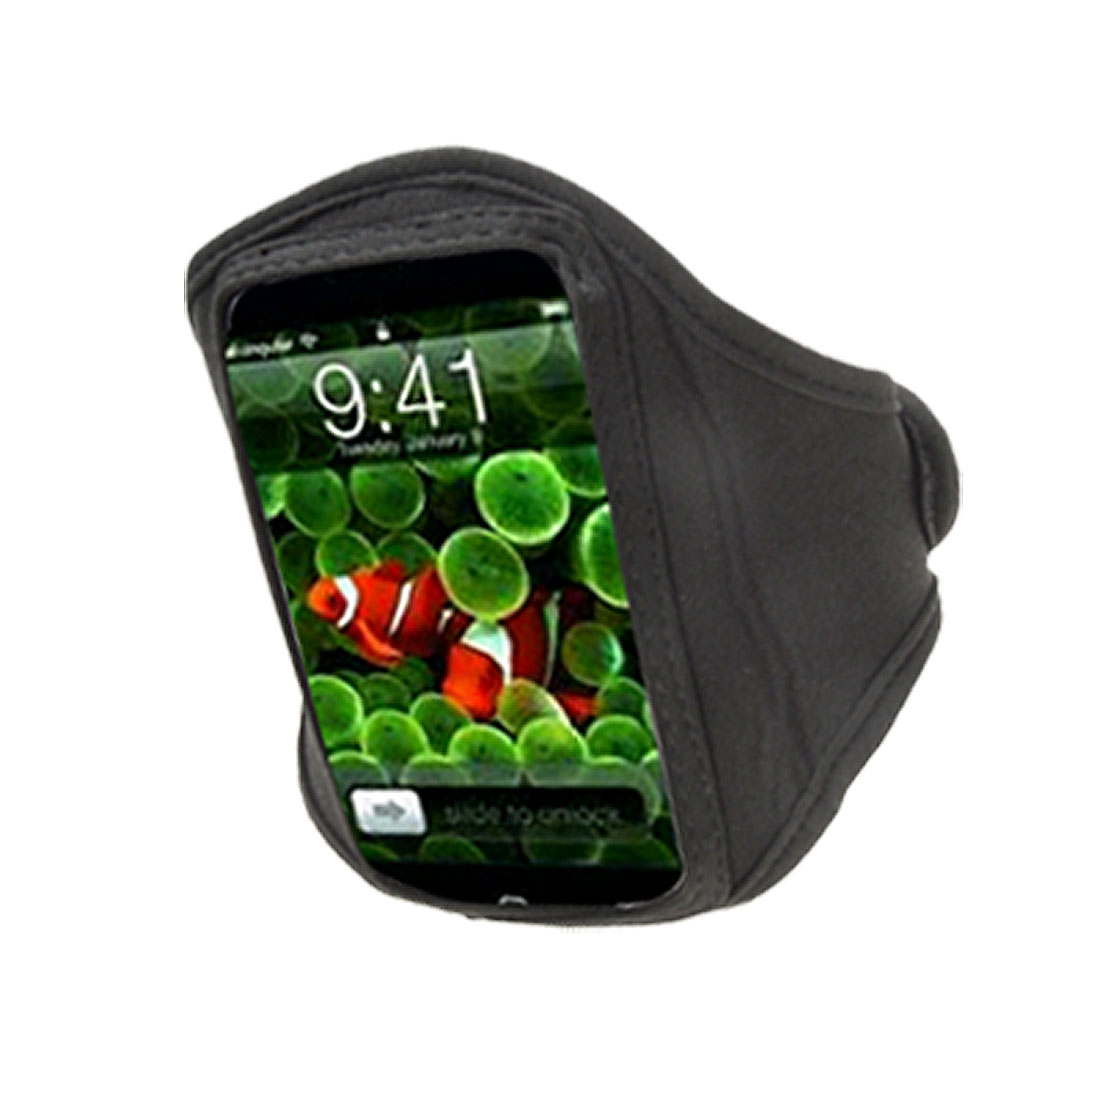 Adjustable Arm Belt Band Cover Holder for Apple iPhone 3G